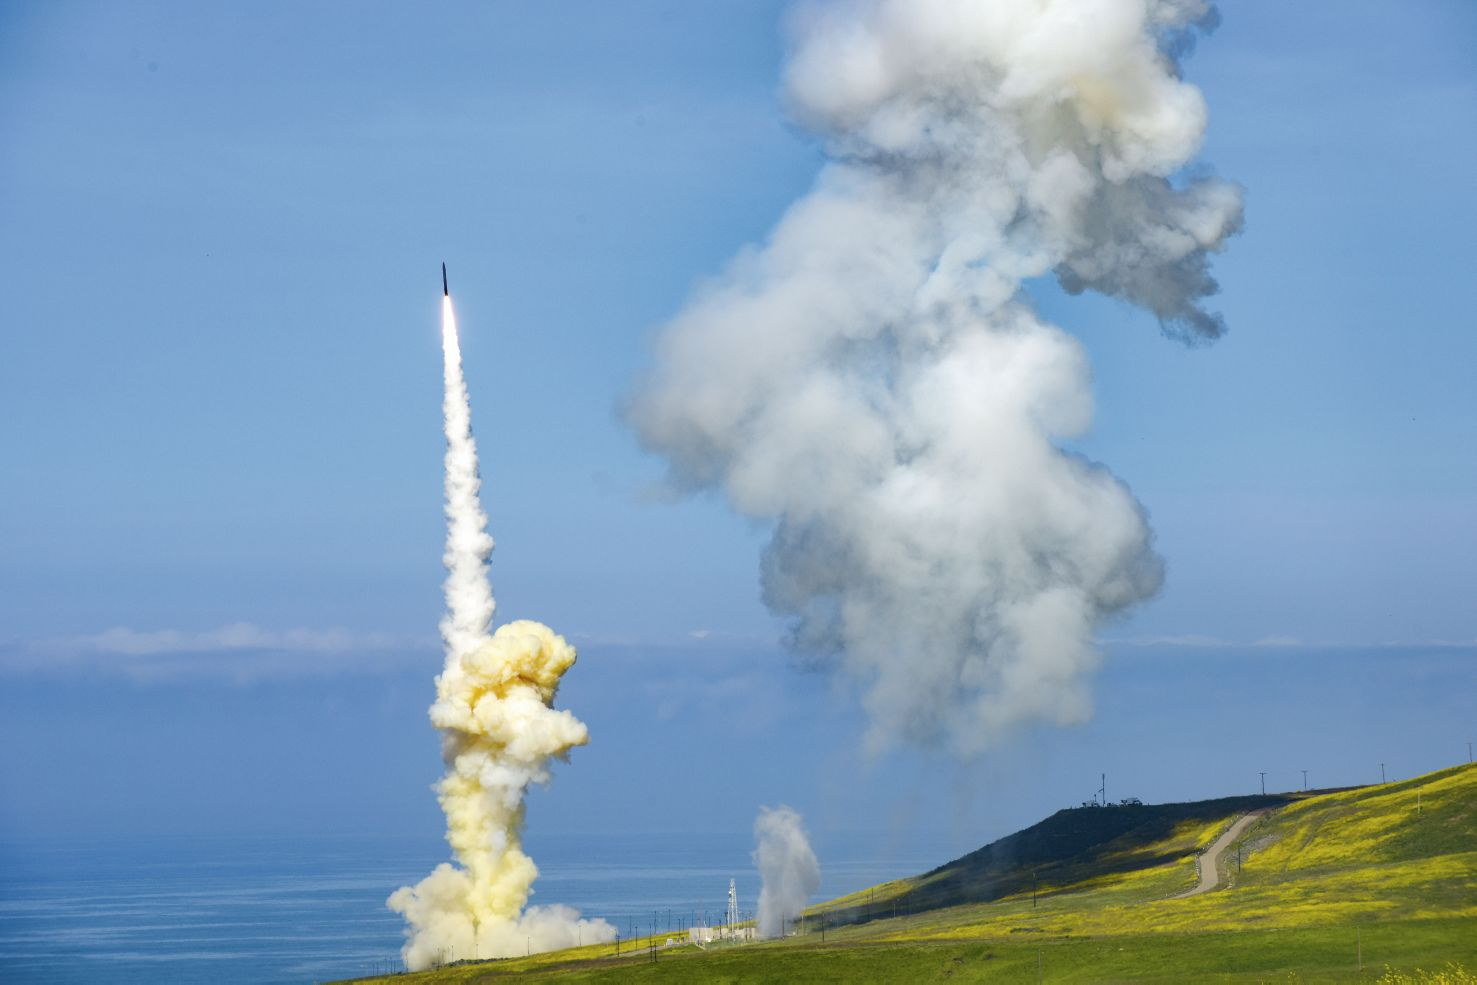 The 'lead' Ground-based Interceptor (GBI) is launched from Vandenberg Air Force Base, California in March, 2019, in the first-ever salvo engagement test of a threat-representative intercontinental ballistic missile (ICBM) target. The two EKV-equipped GBIs successfully intercepted a target launched from the Ronald Reagan Ballistic Missile Defense Test Site on Kwajalein Atoll. (US Missile Defense Agency)